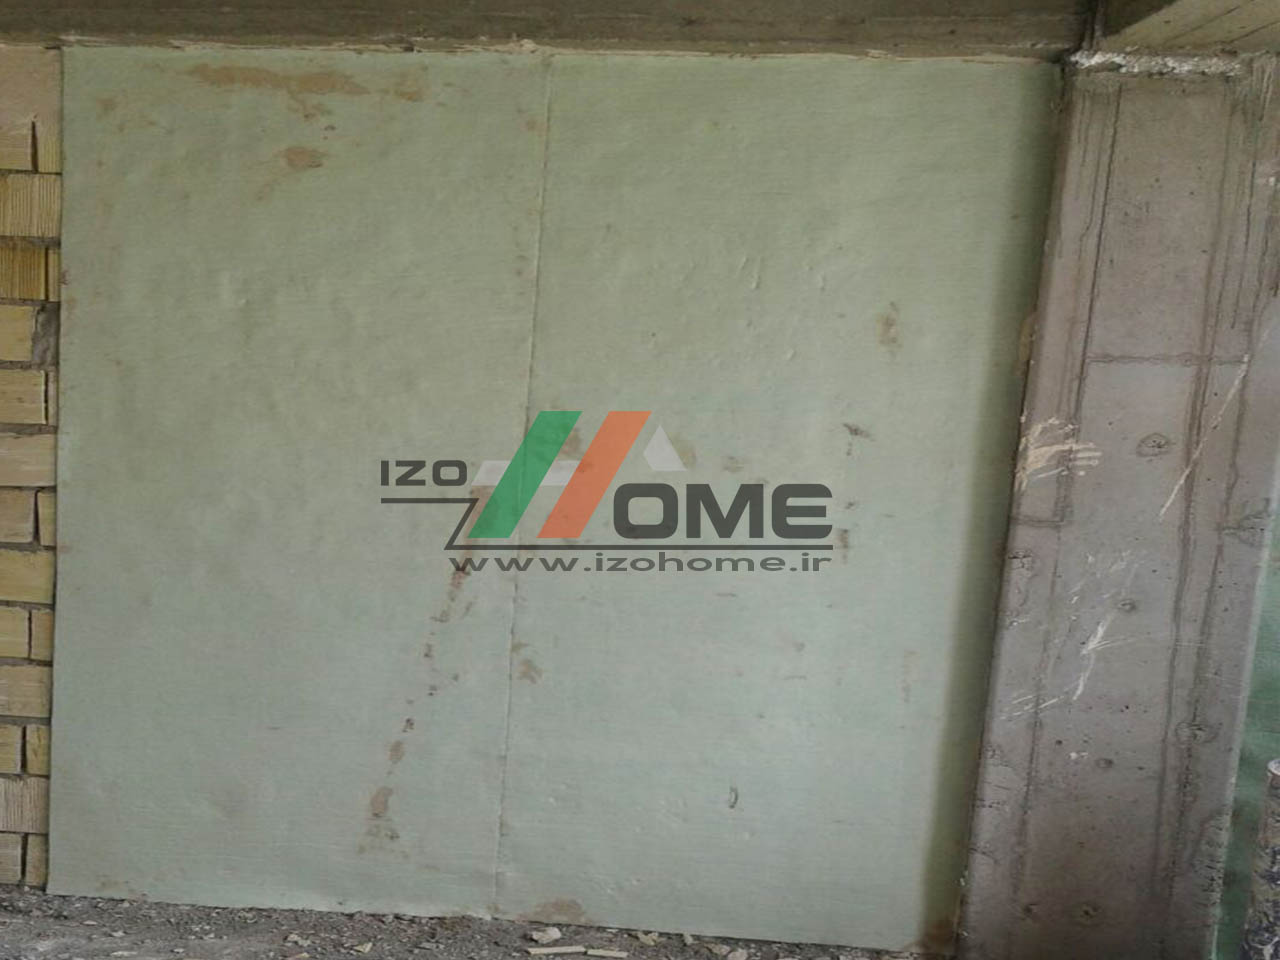 izohome20 1 - Thermal insulation for the wall